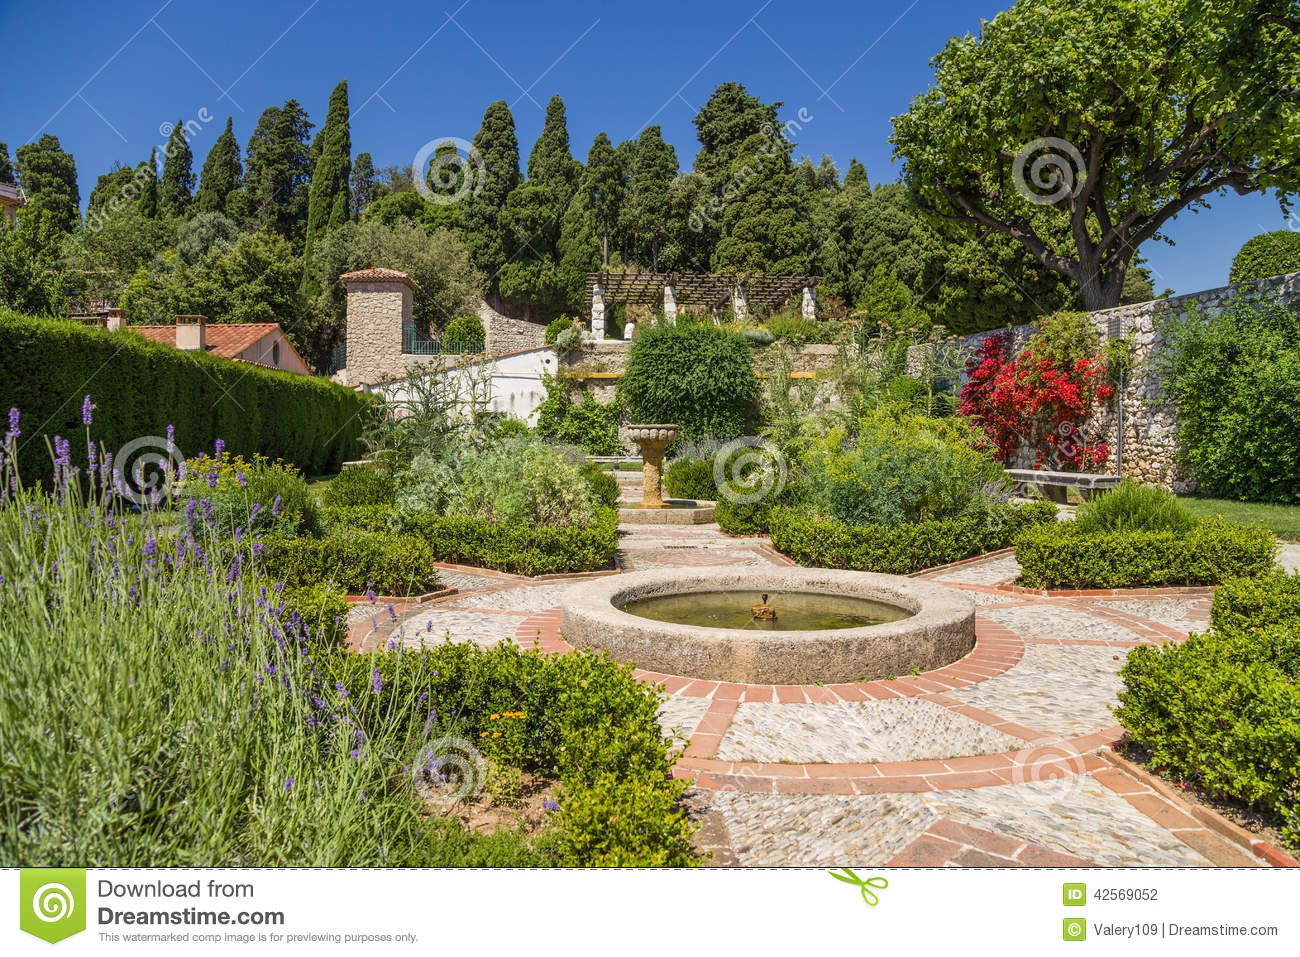 Gentil france jardin de monast re de cimiez photo stock for France jardin